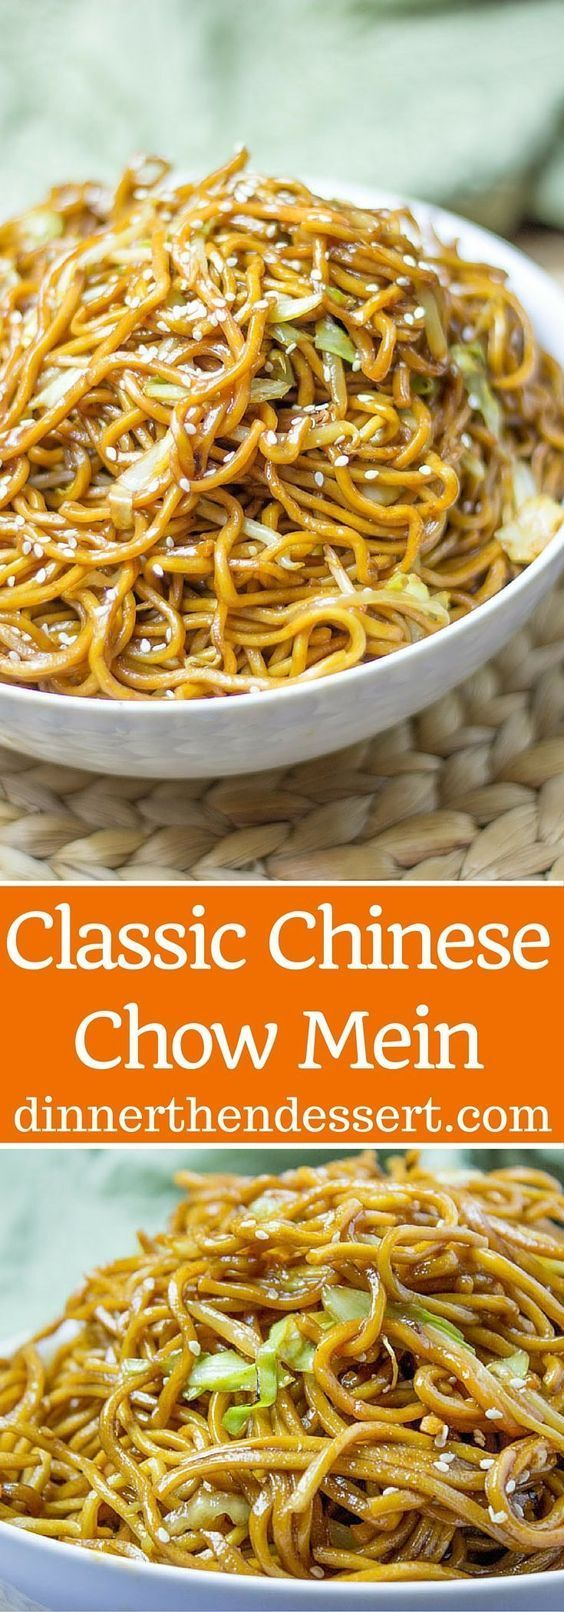 Classic Chinese Chow Mein with authentic ingredients and easy ingredient swaps to make this a pantry meal in a pinch! #chinesefoodrecipes